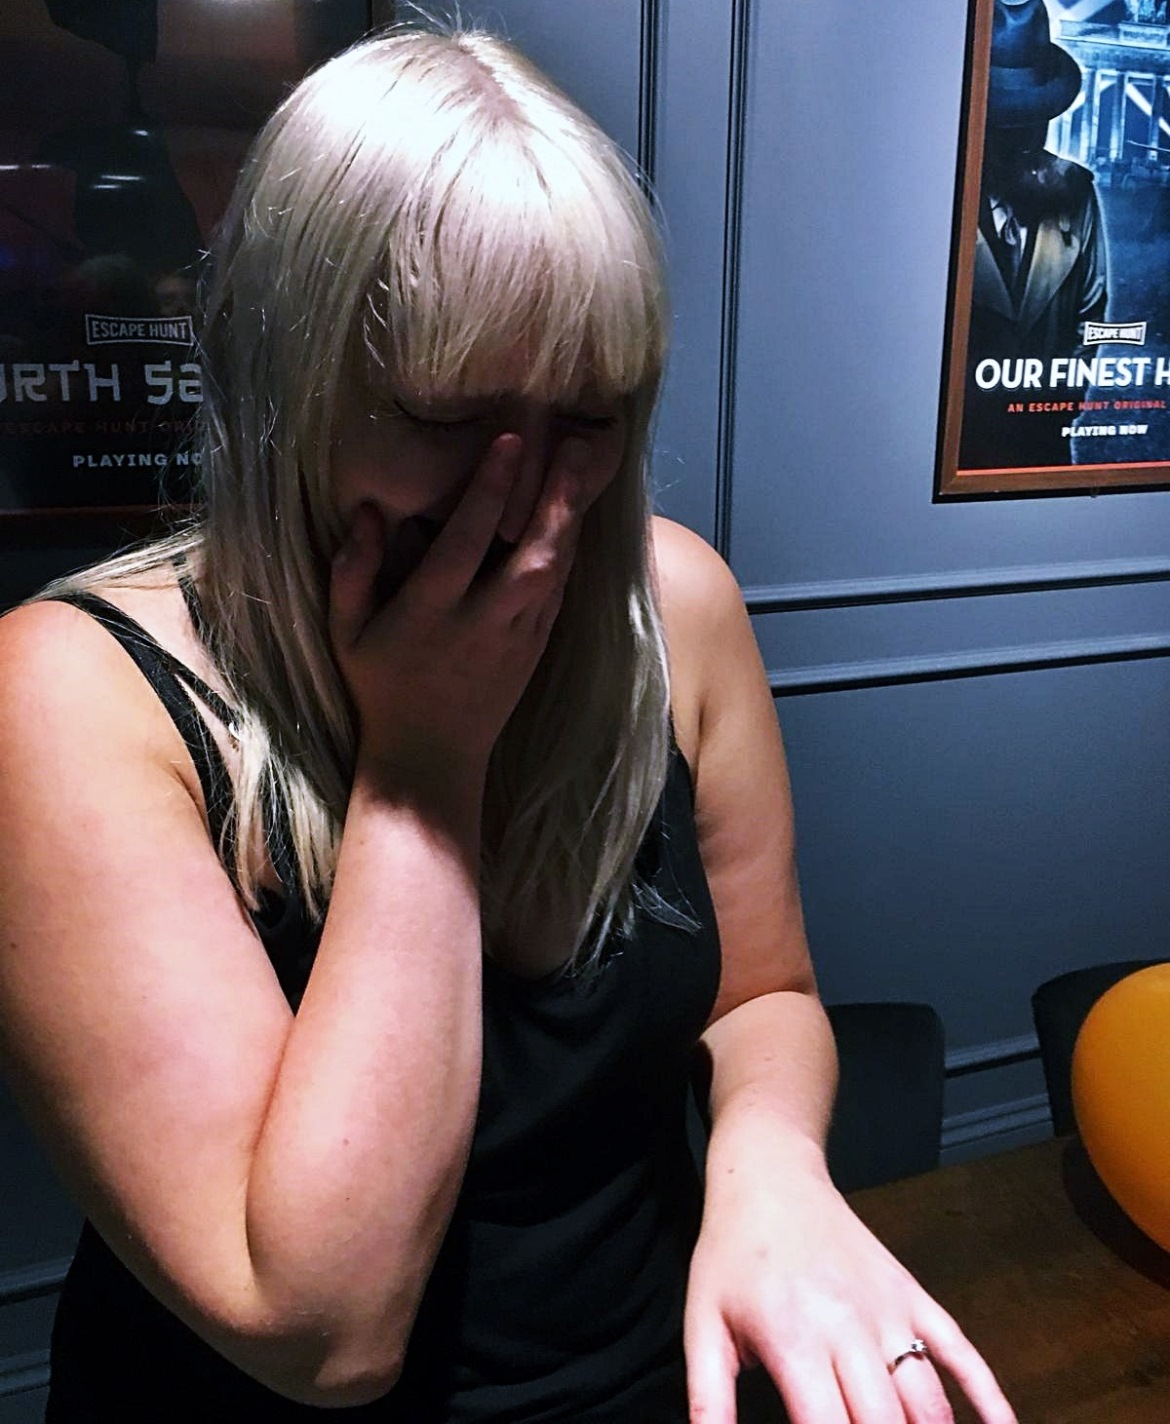 Getting emotional at my proposal at Escape Hunt escape room - Ten things that went through my mind when Tim proposed to me by BeckyBecky Blogs